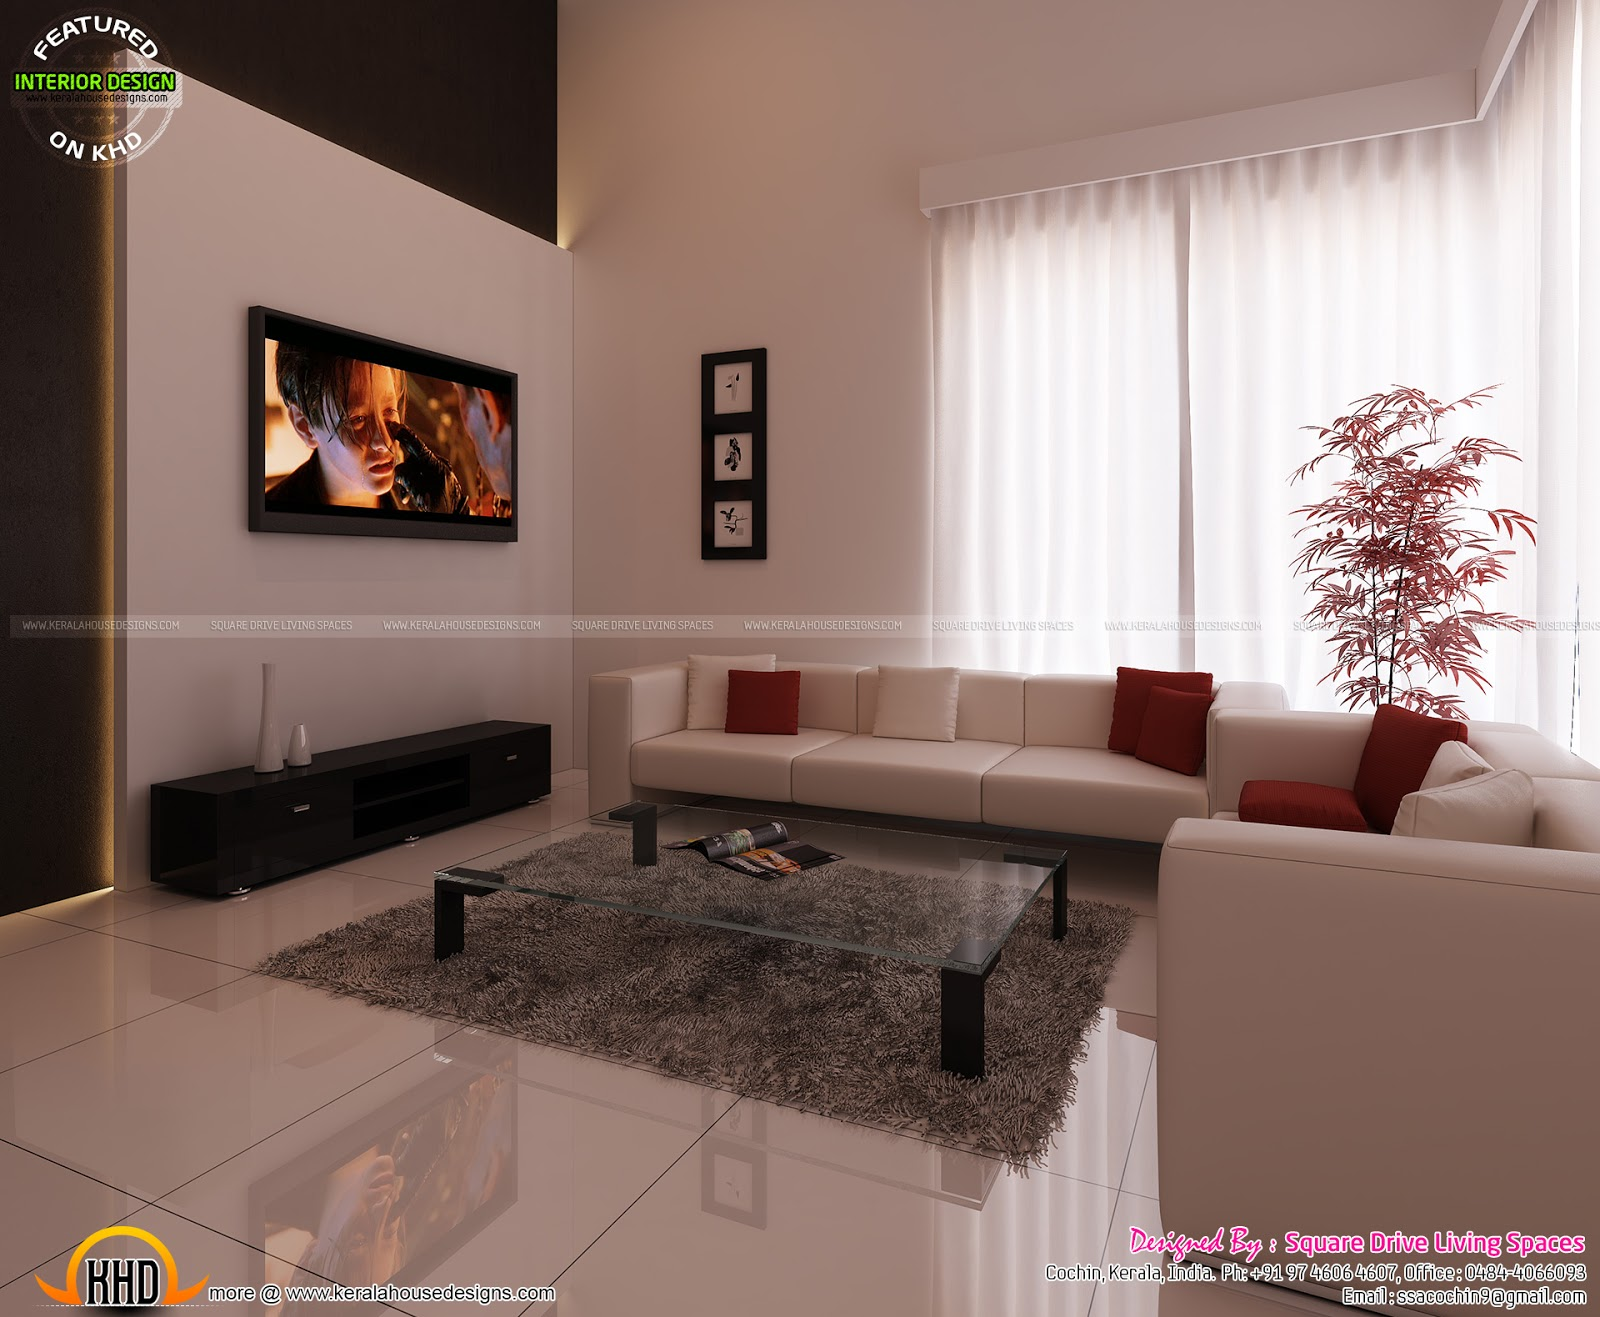 Your family room—big or small—should be a space where everyone ca. Green Kitchen, Bedroom, living inteiors - Kerala home